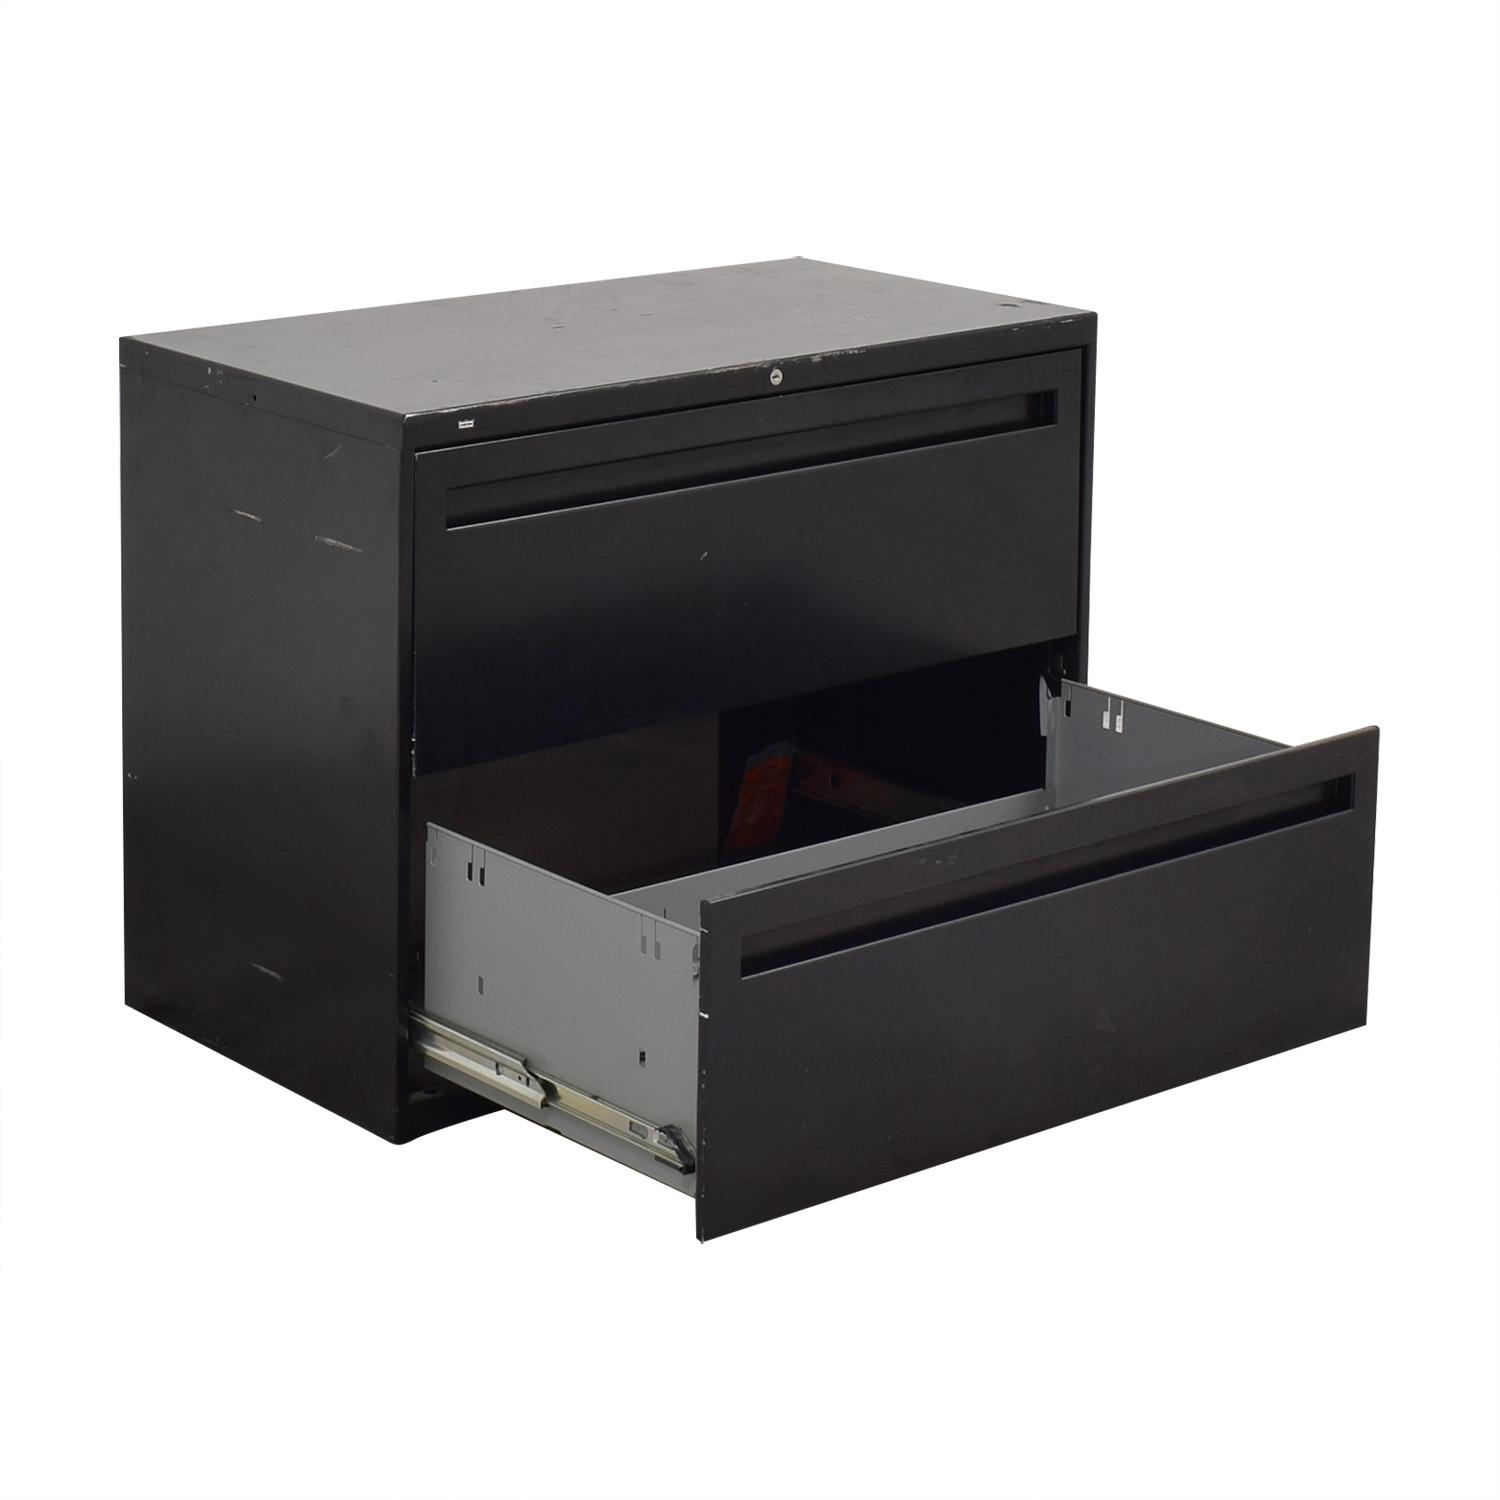 Hon HON 2-Drawer Lateral File Cabinet discount